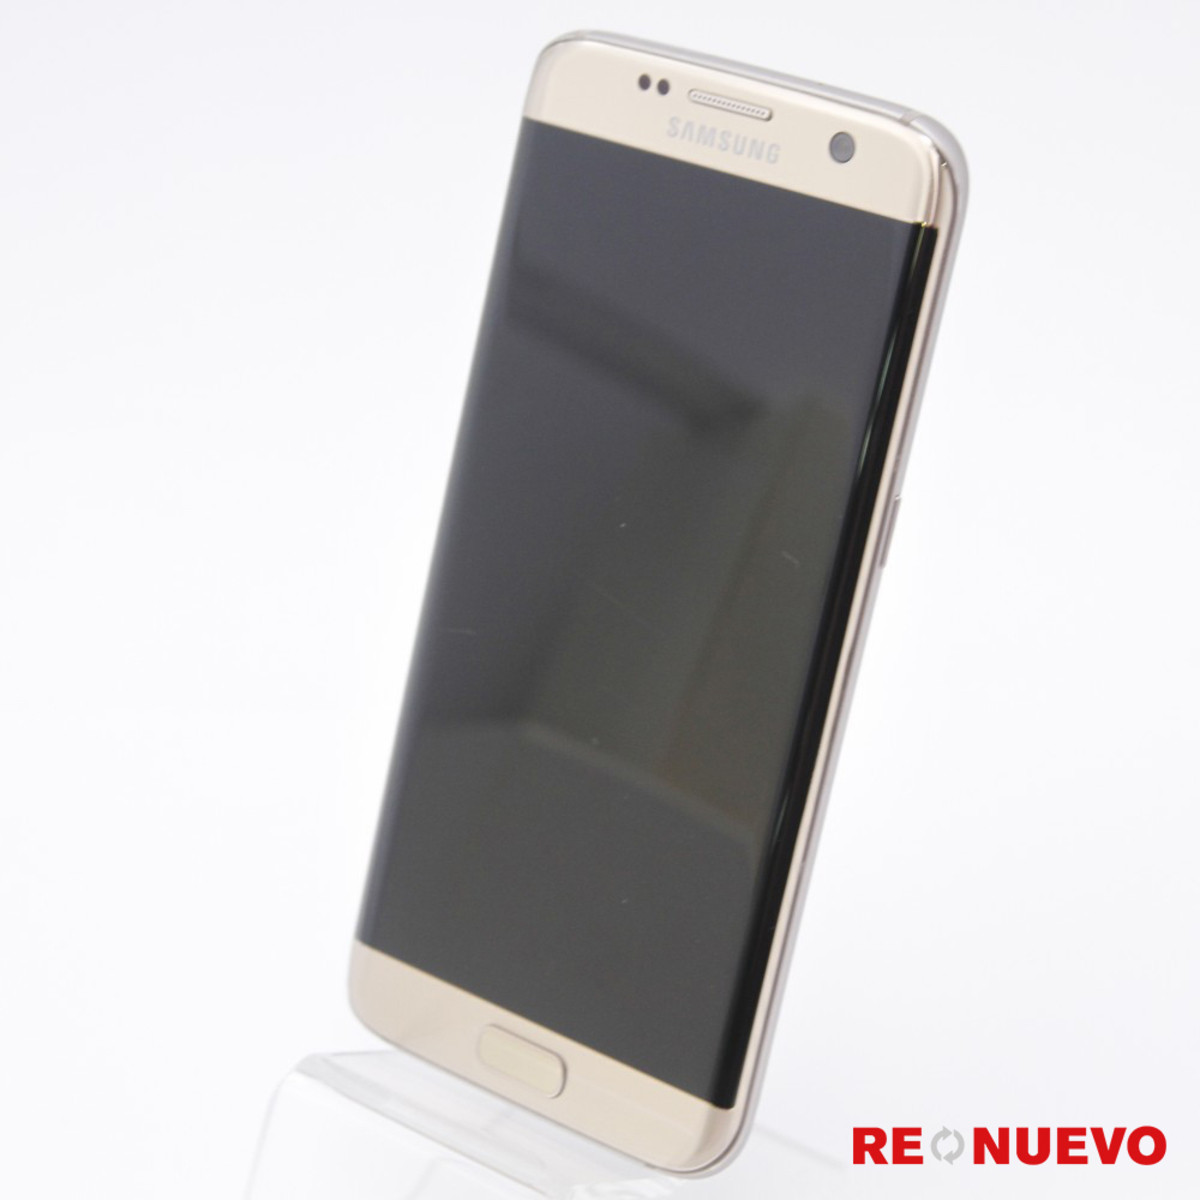 Comprar Galaxy S7 Edge Contemporáneo Prar Samsung Galaxy S7 Edge De 32gb Gold Platinum De Of Comprar Galaxy S7 Edge Perfecto Samsung Galaxy S7 Edge Celulares Costa Rica